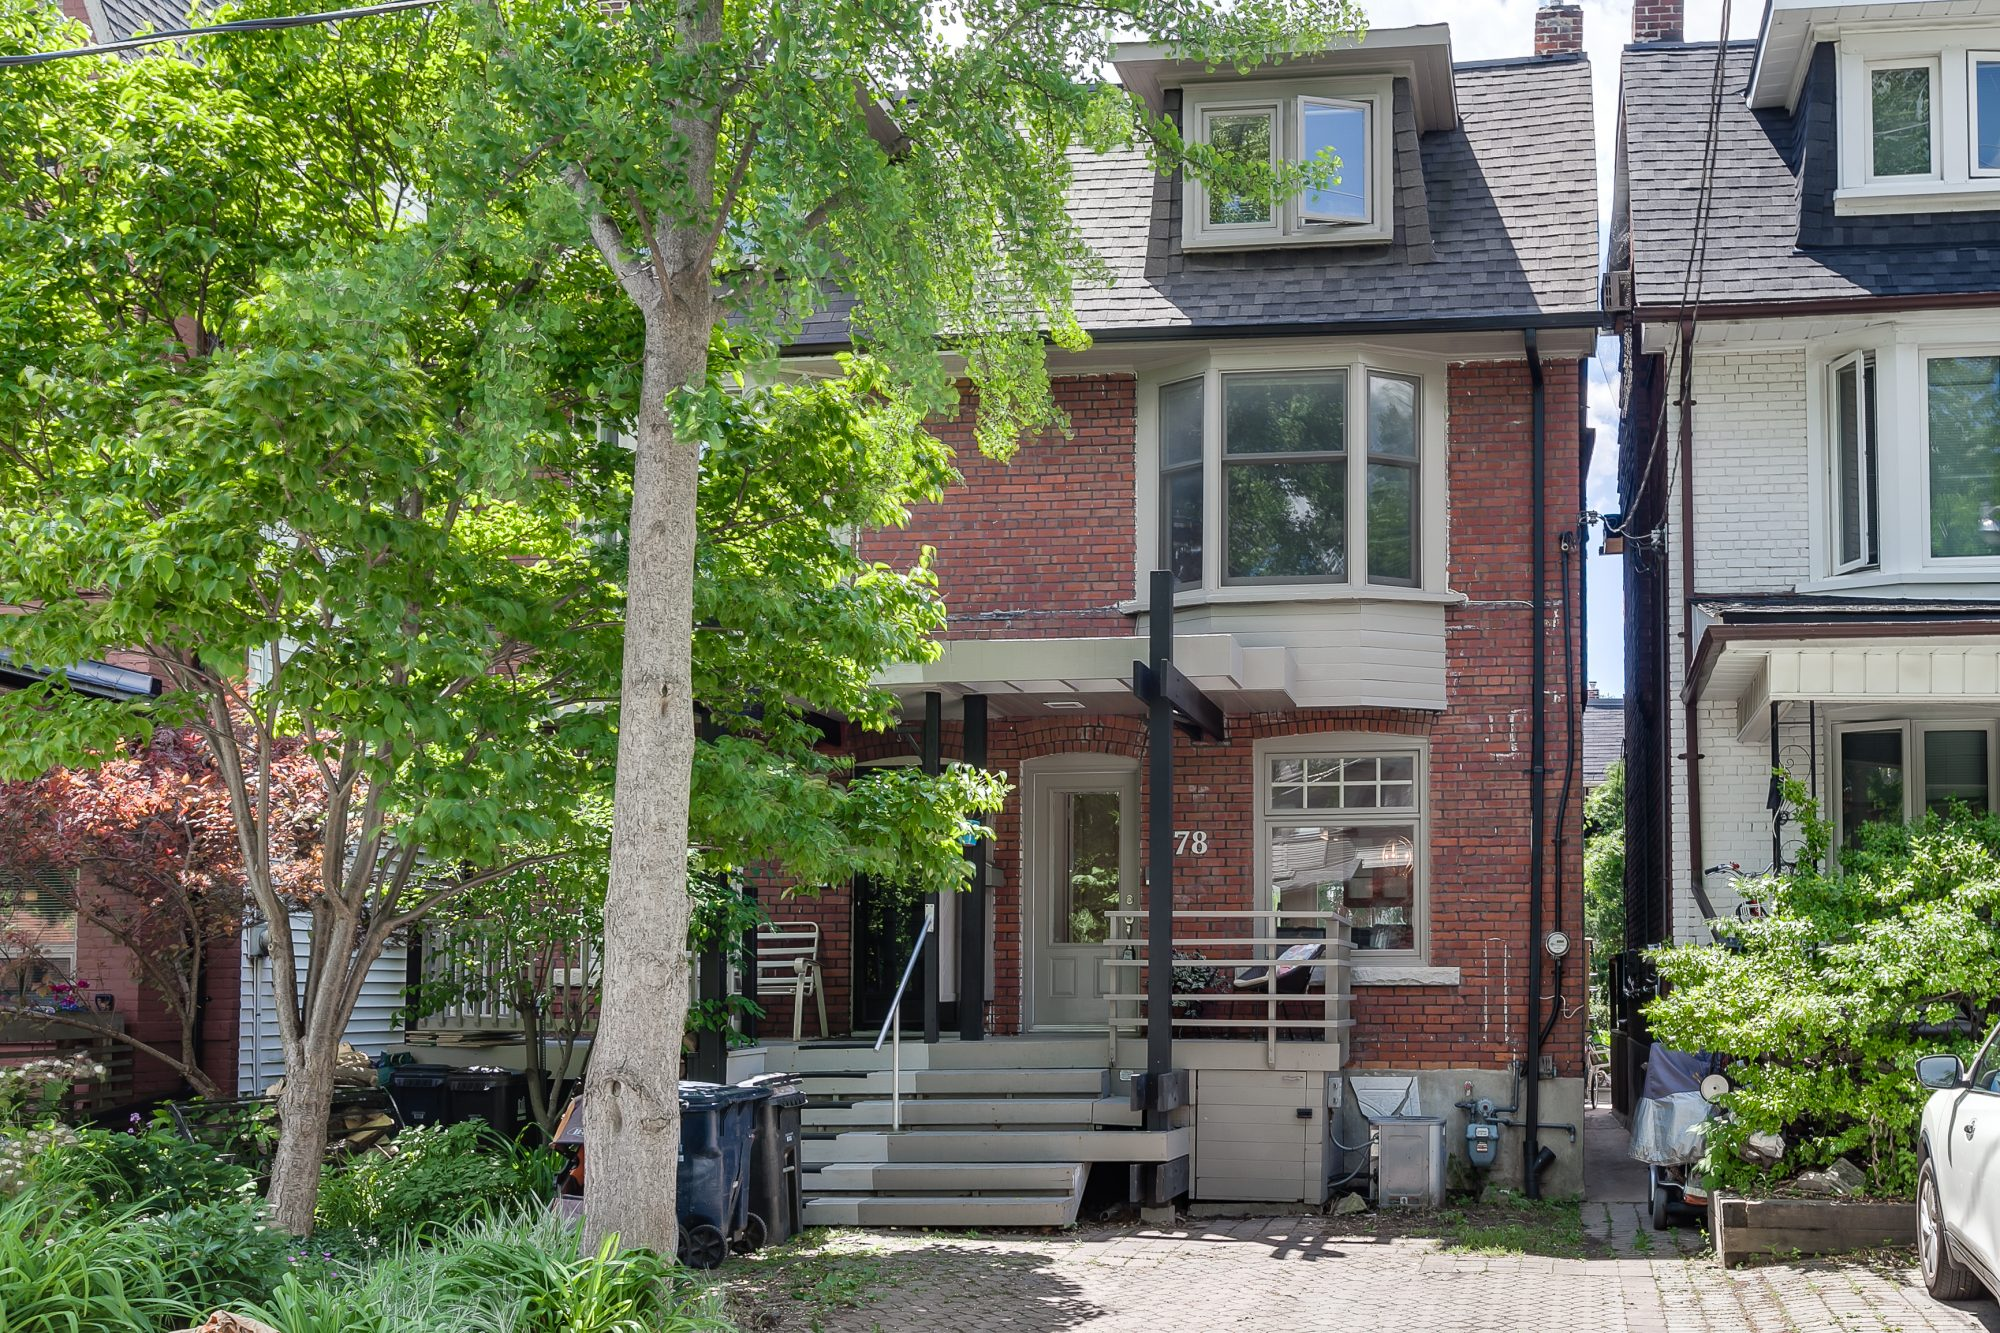 The house that sold at 178 Albany Avenue